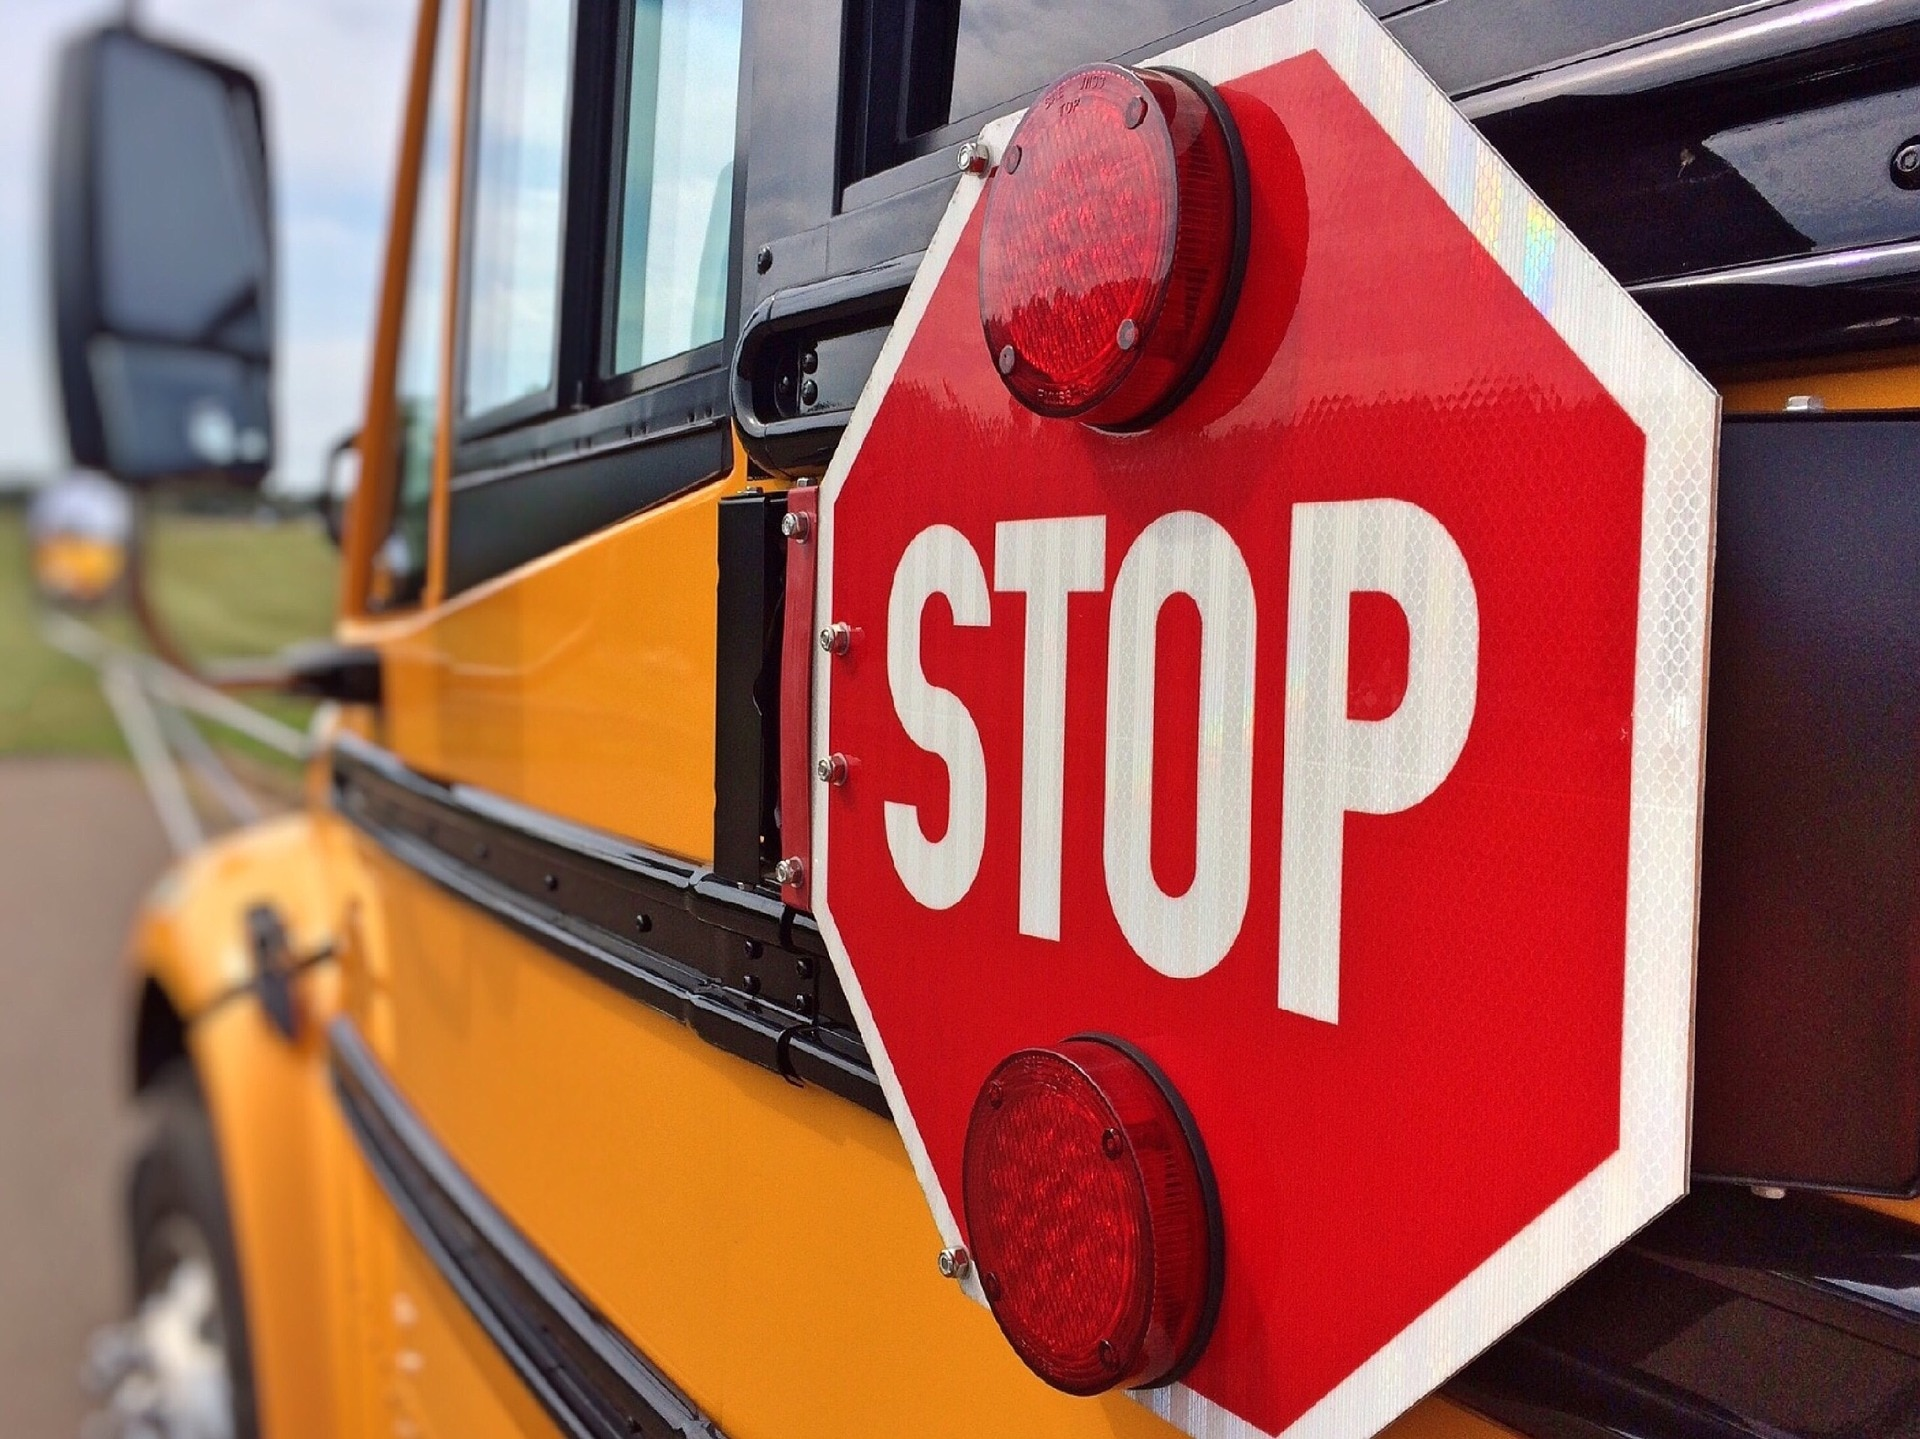 Stop sign on the side of a school bus.